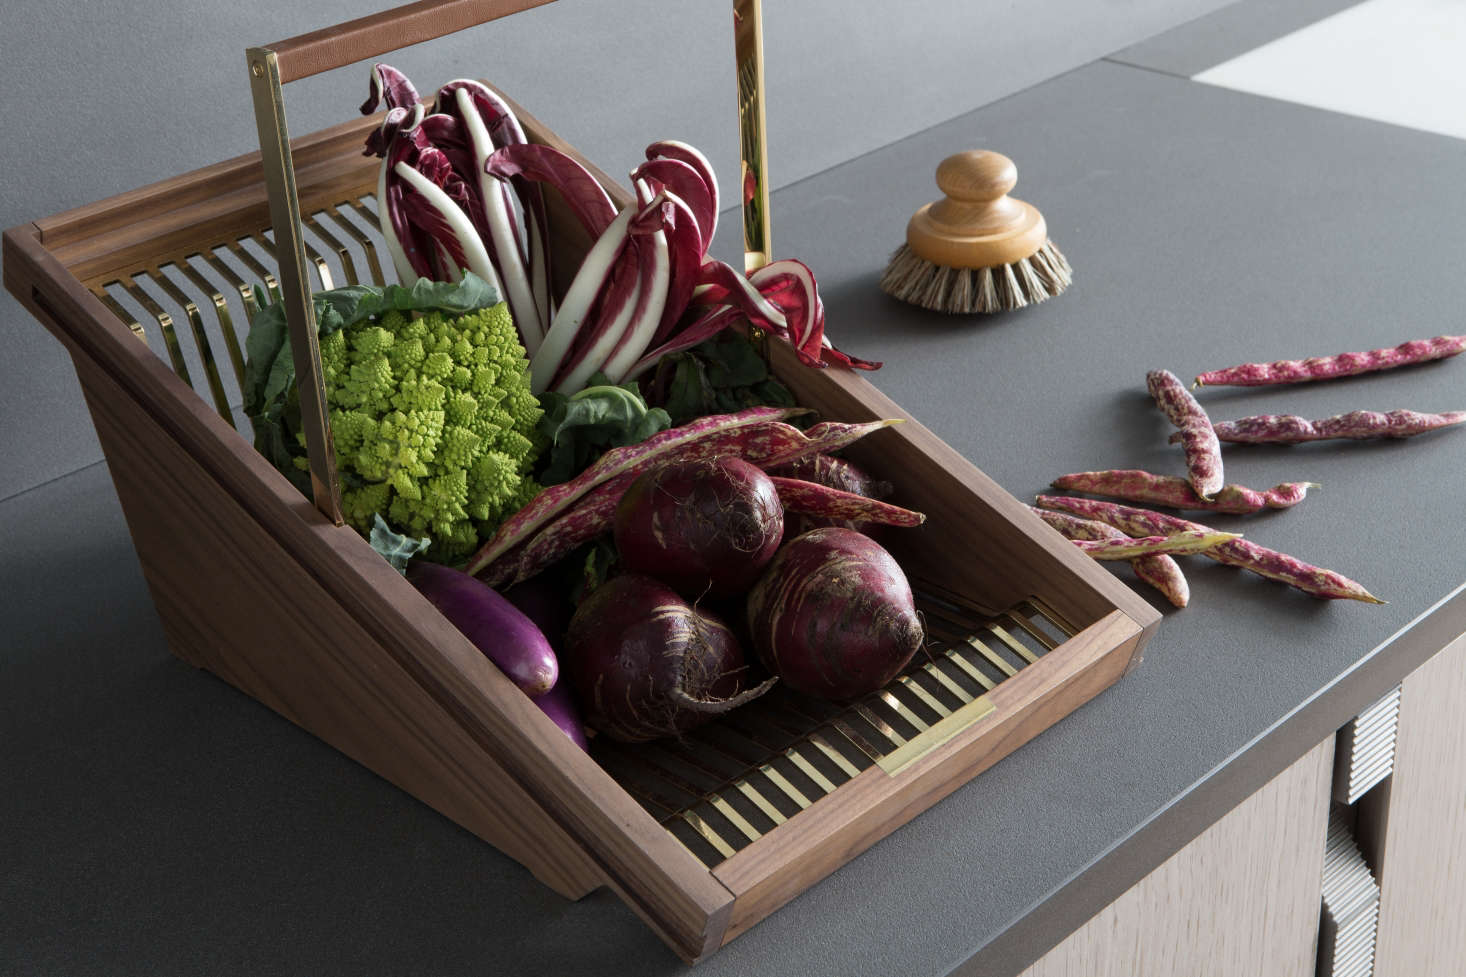 A refined version of the classic garden trug, Lanserring's wood and brass baskets can go from garden to counter to fitted cabinet shelves, where they're used as storage for perishables that don't require refrigeration, such as apples, potatoes, and onions. (The showroom's refrigerator, by the way, is in the pantry.)